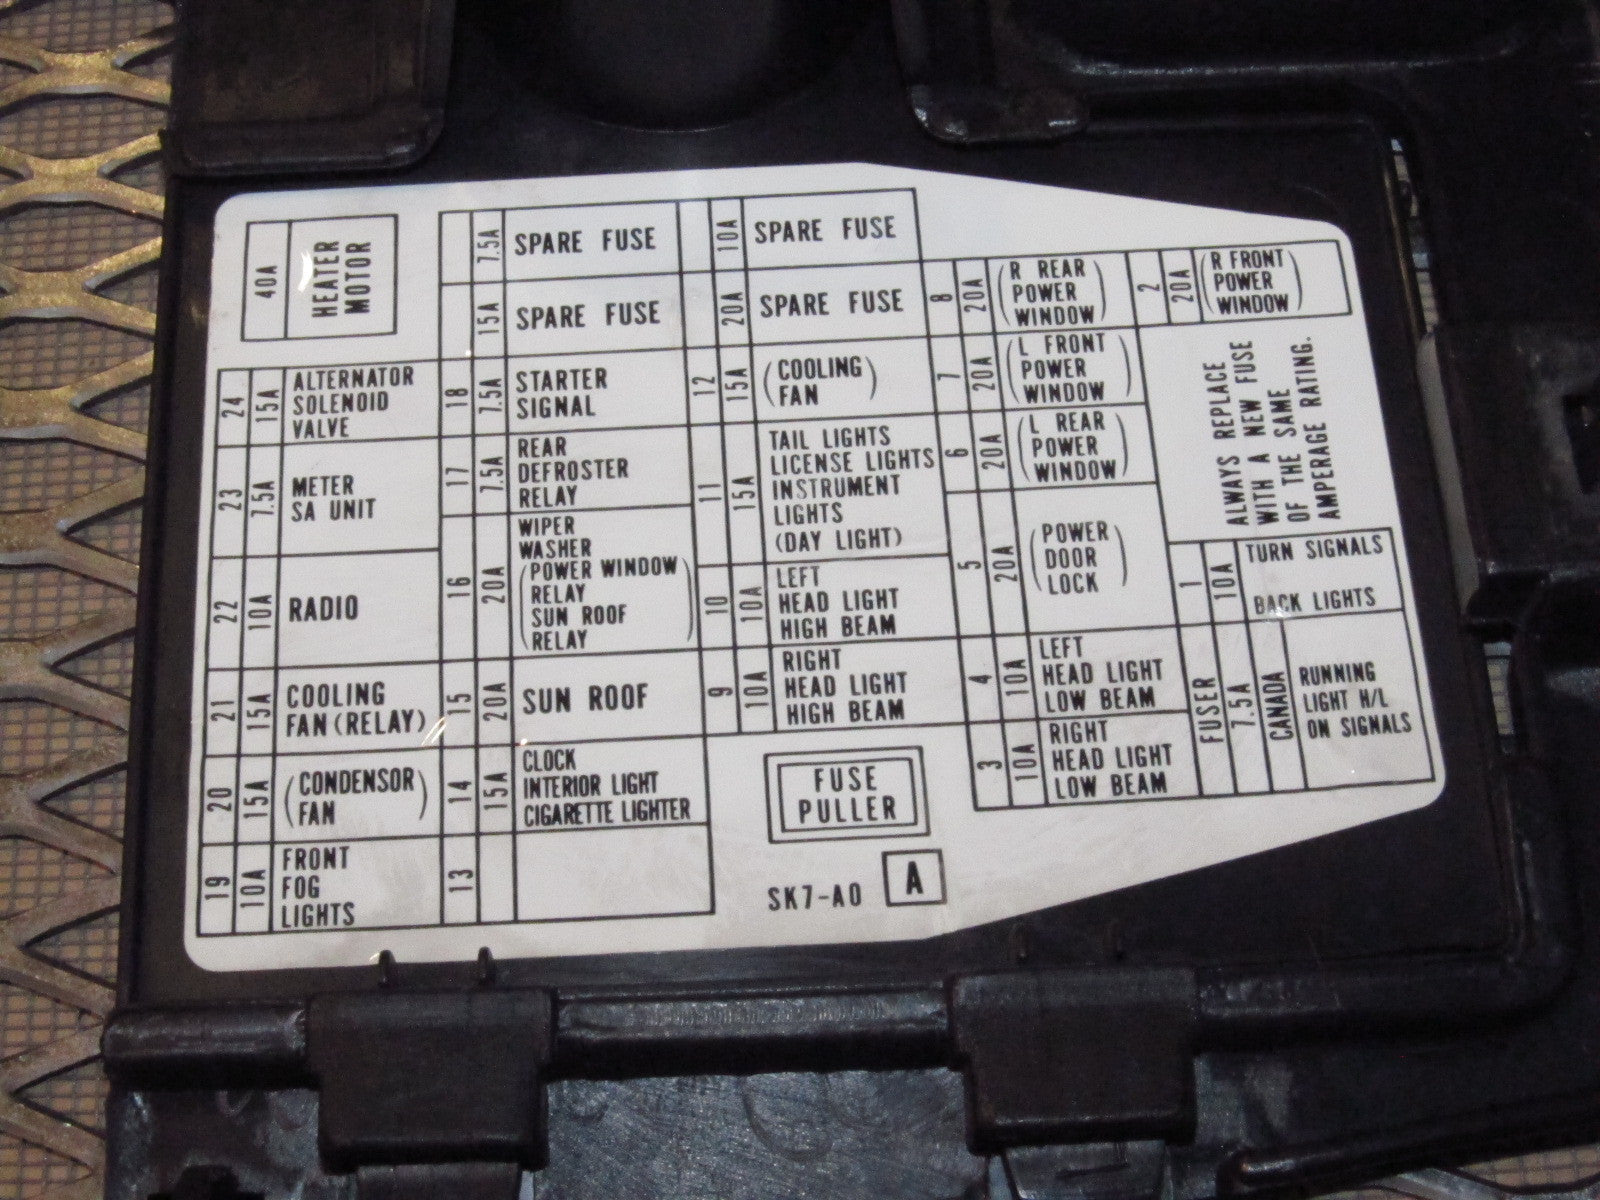 Acura Integra Fuse Box Electronic Wiring Diagrams 93 Dakota Diagram 1992 List Of Schematic Circuit 92 90 91